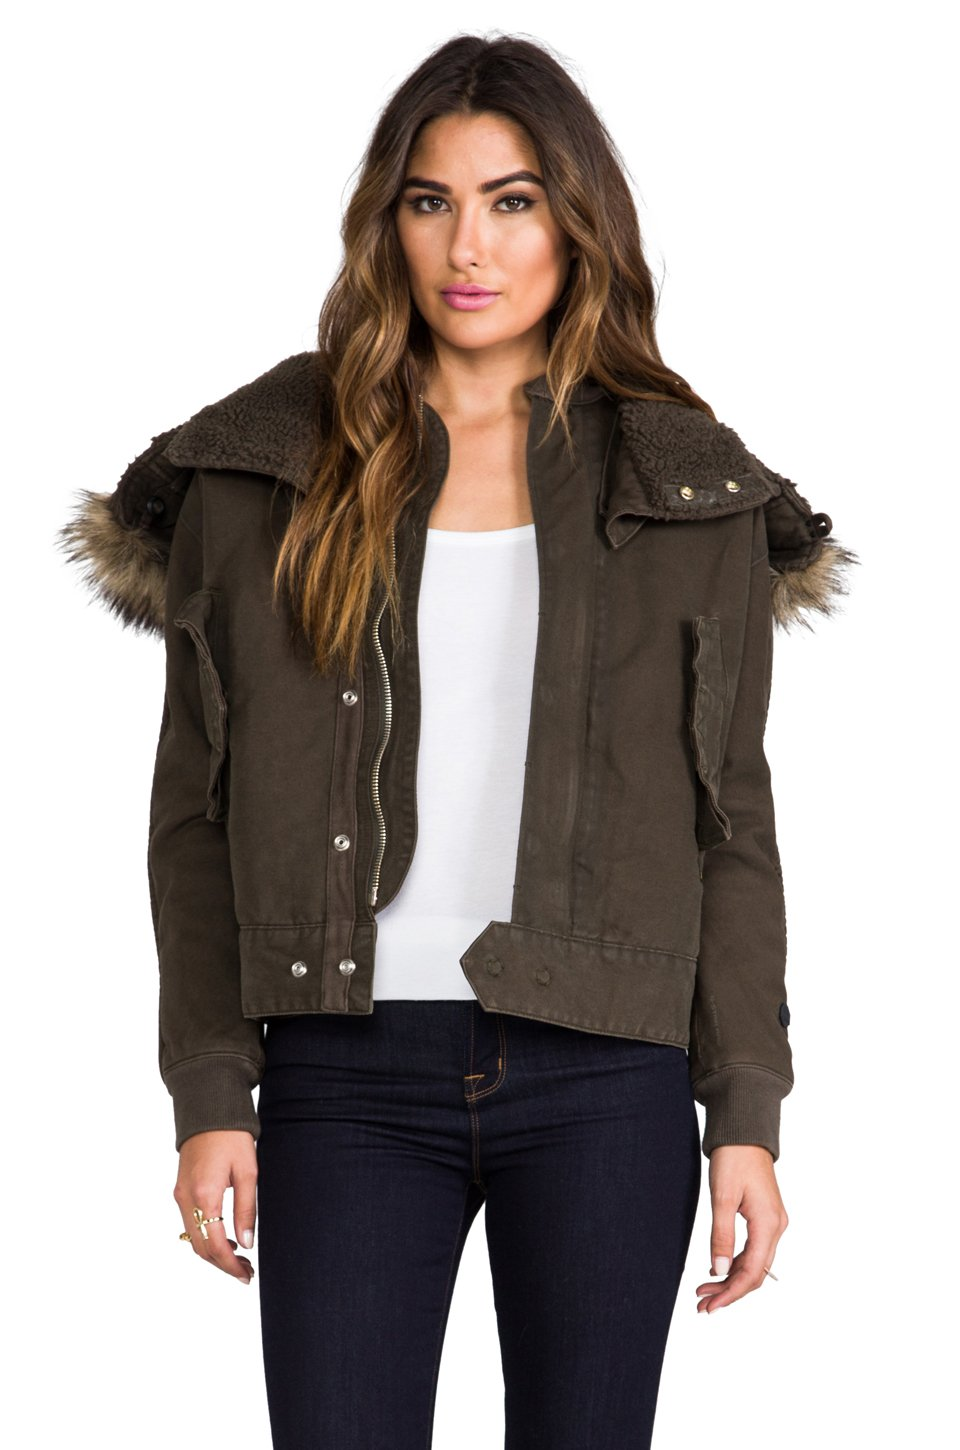 g star raw army flight bomber jacket in olive in green lyst. Black Bedroom Furniture Sets. Home Design Ideas